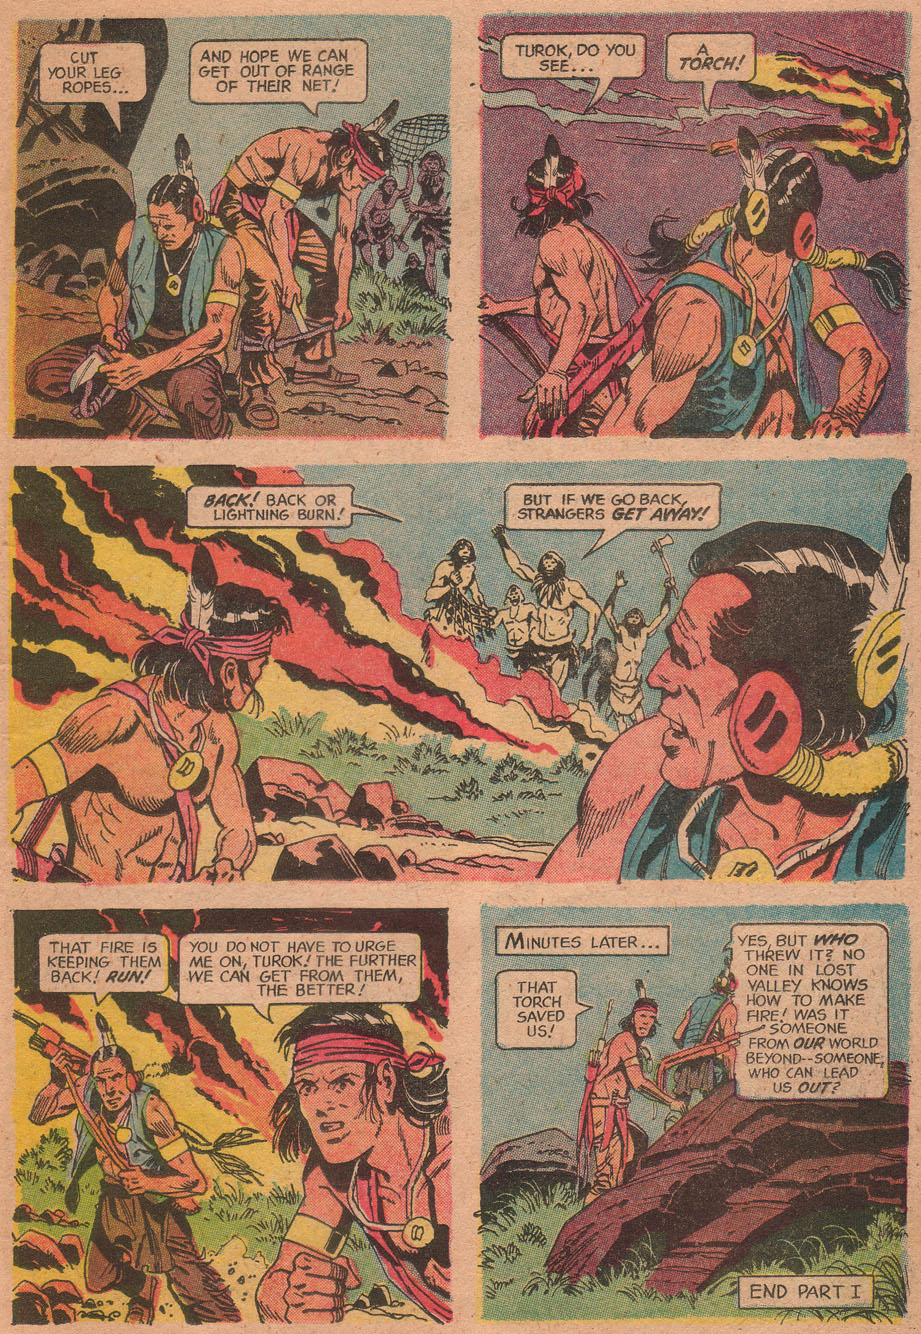 Read online Turok, Son of Stone comic -  Issue #73 - 11